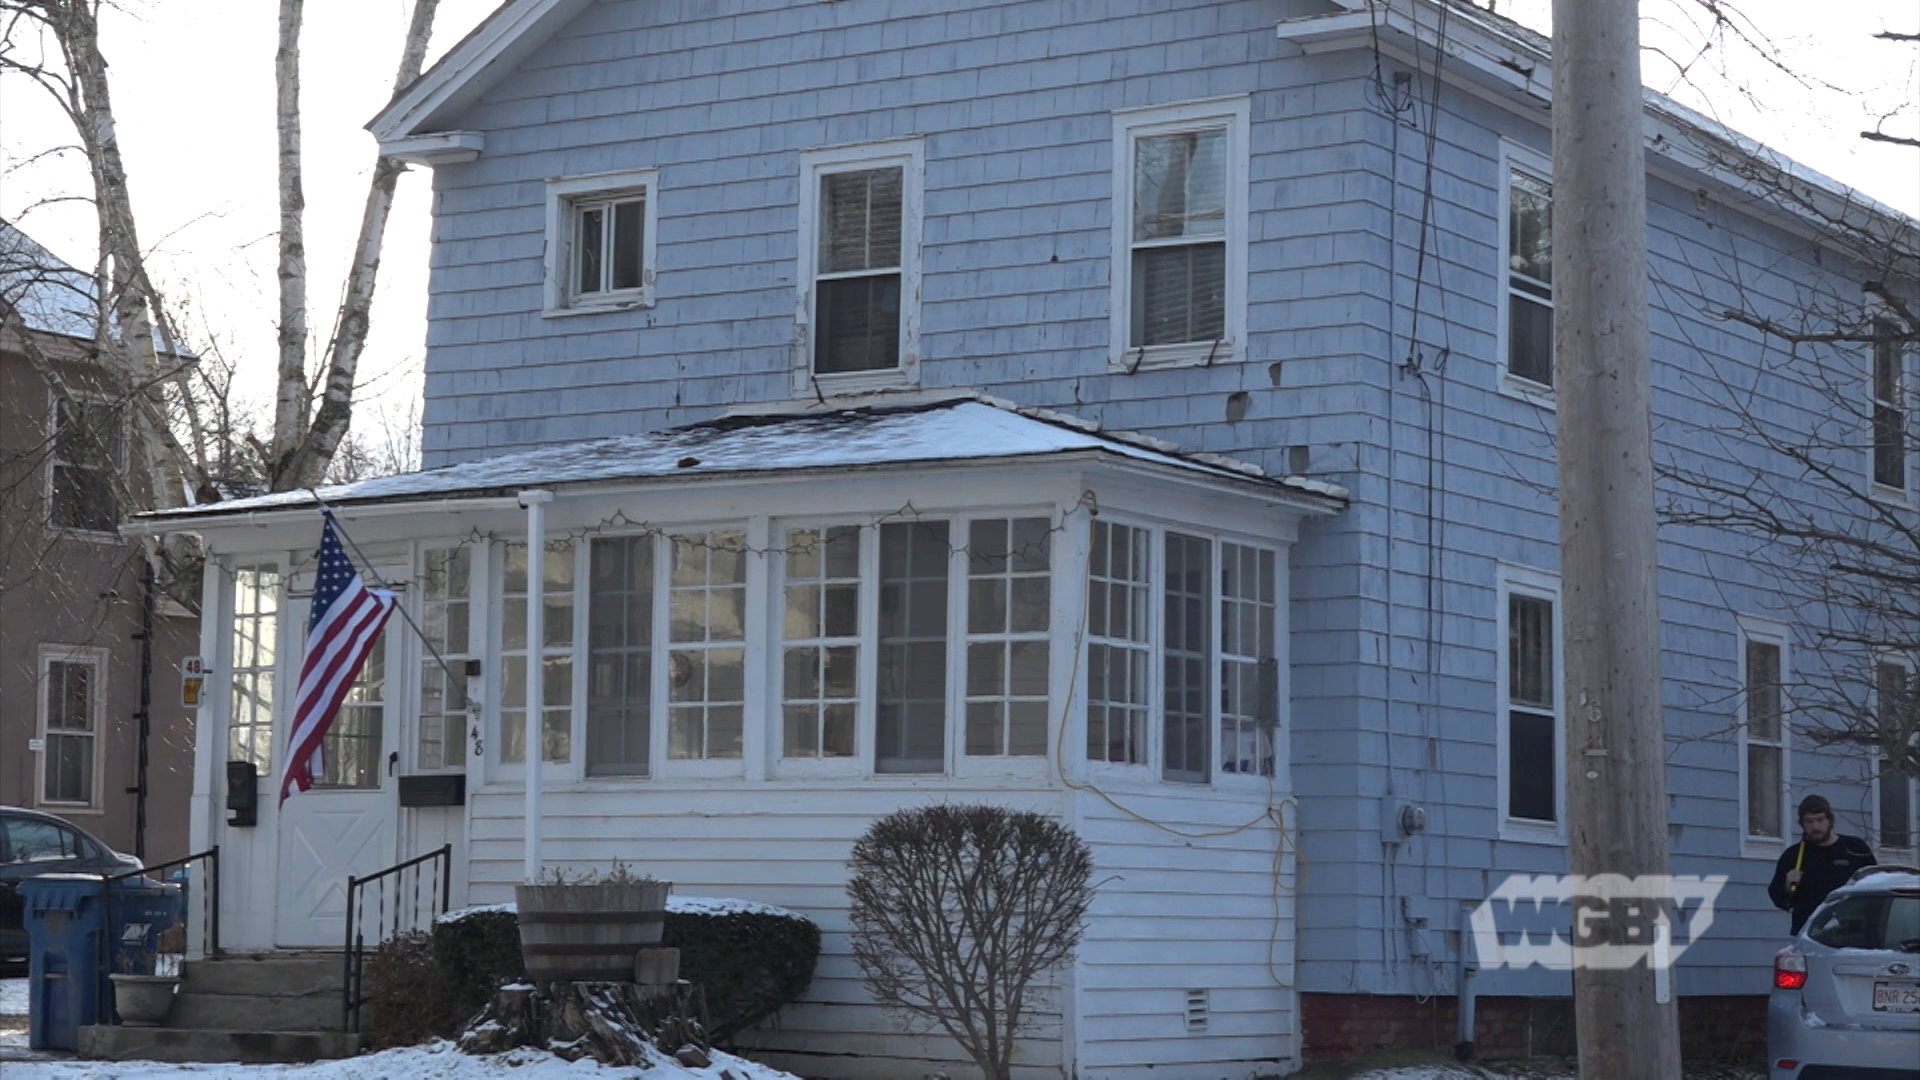 WATCH: In the wake of rising costs of living and stagnant wage growith, Brian Sullivan examines the state of affordable housing in Great Barrington, MA.